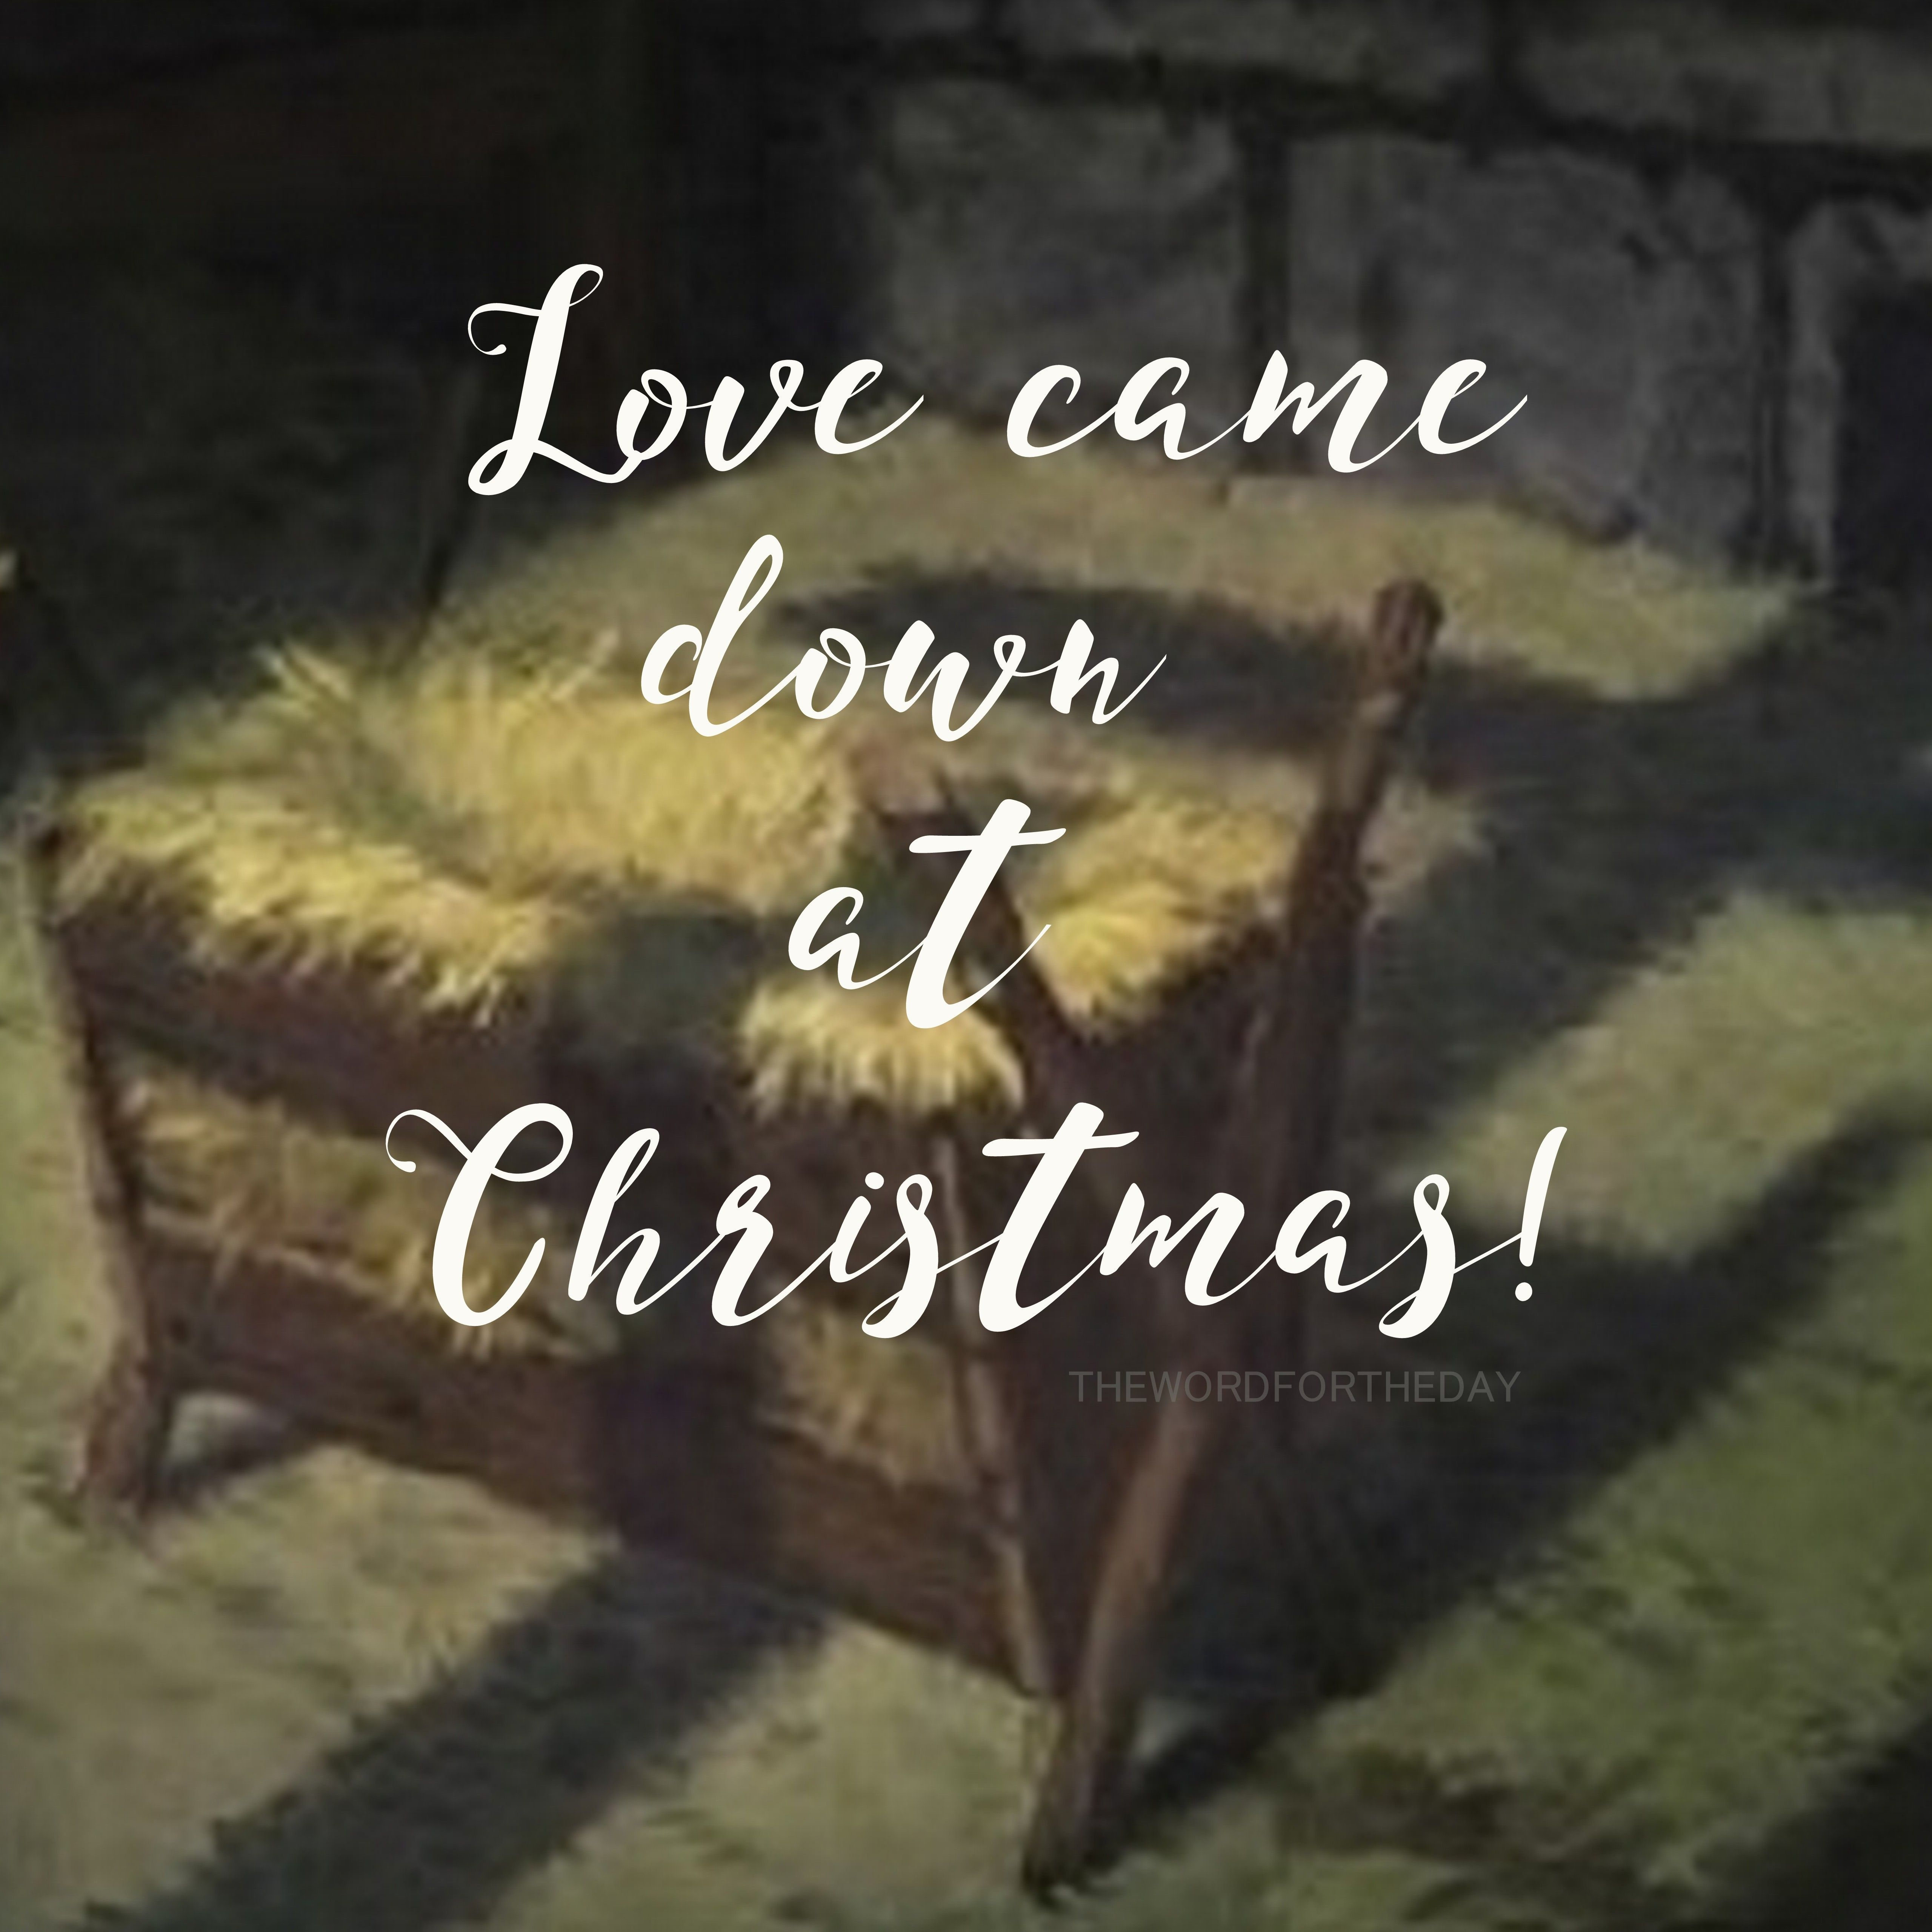 #love quotes#love#christmas#Christmas Quotes#Bible Quotes#Manger#GOD IS LOVE#gospel #christian ...